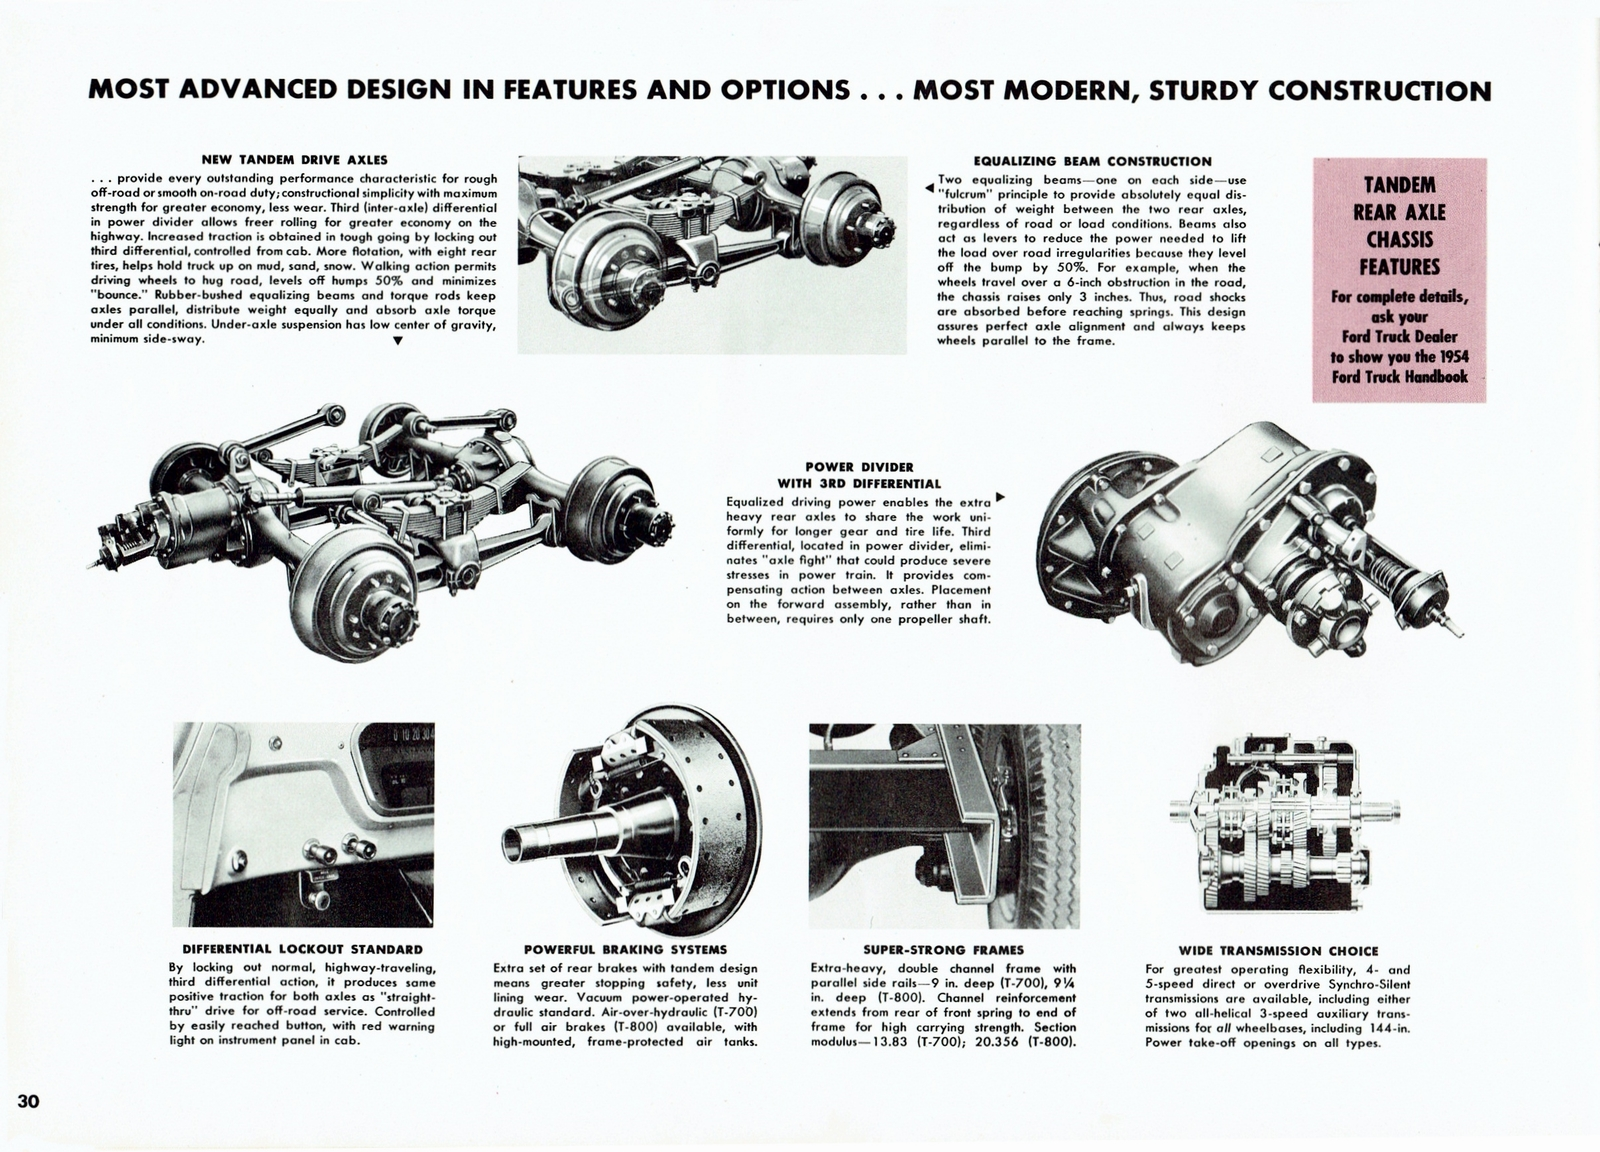 1954 Ford Trucks Full Line Brochure